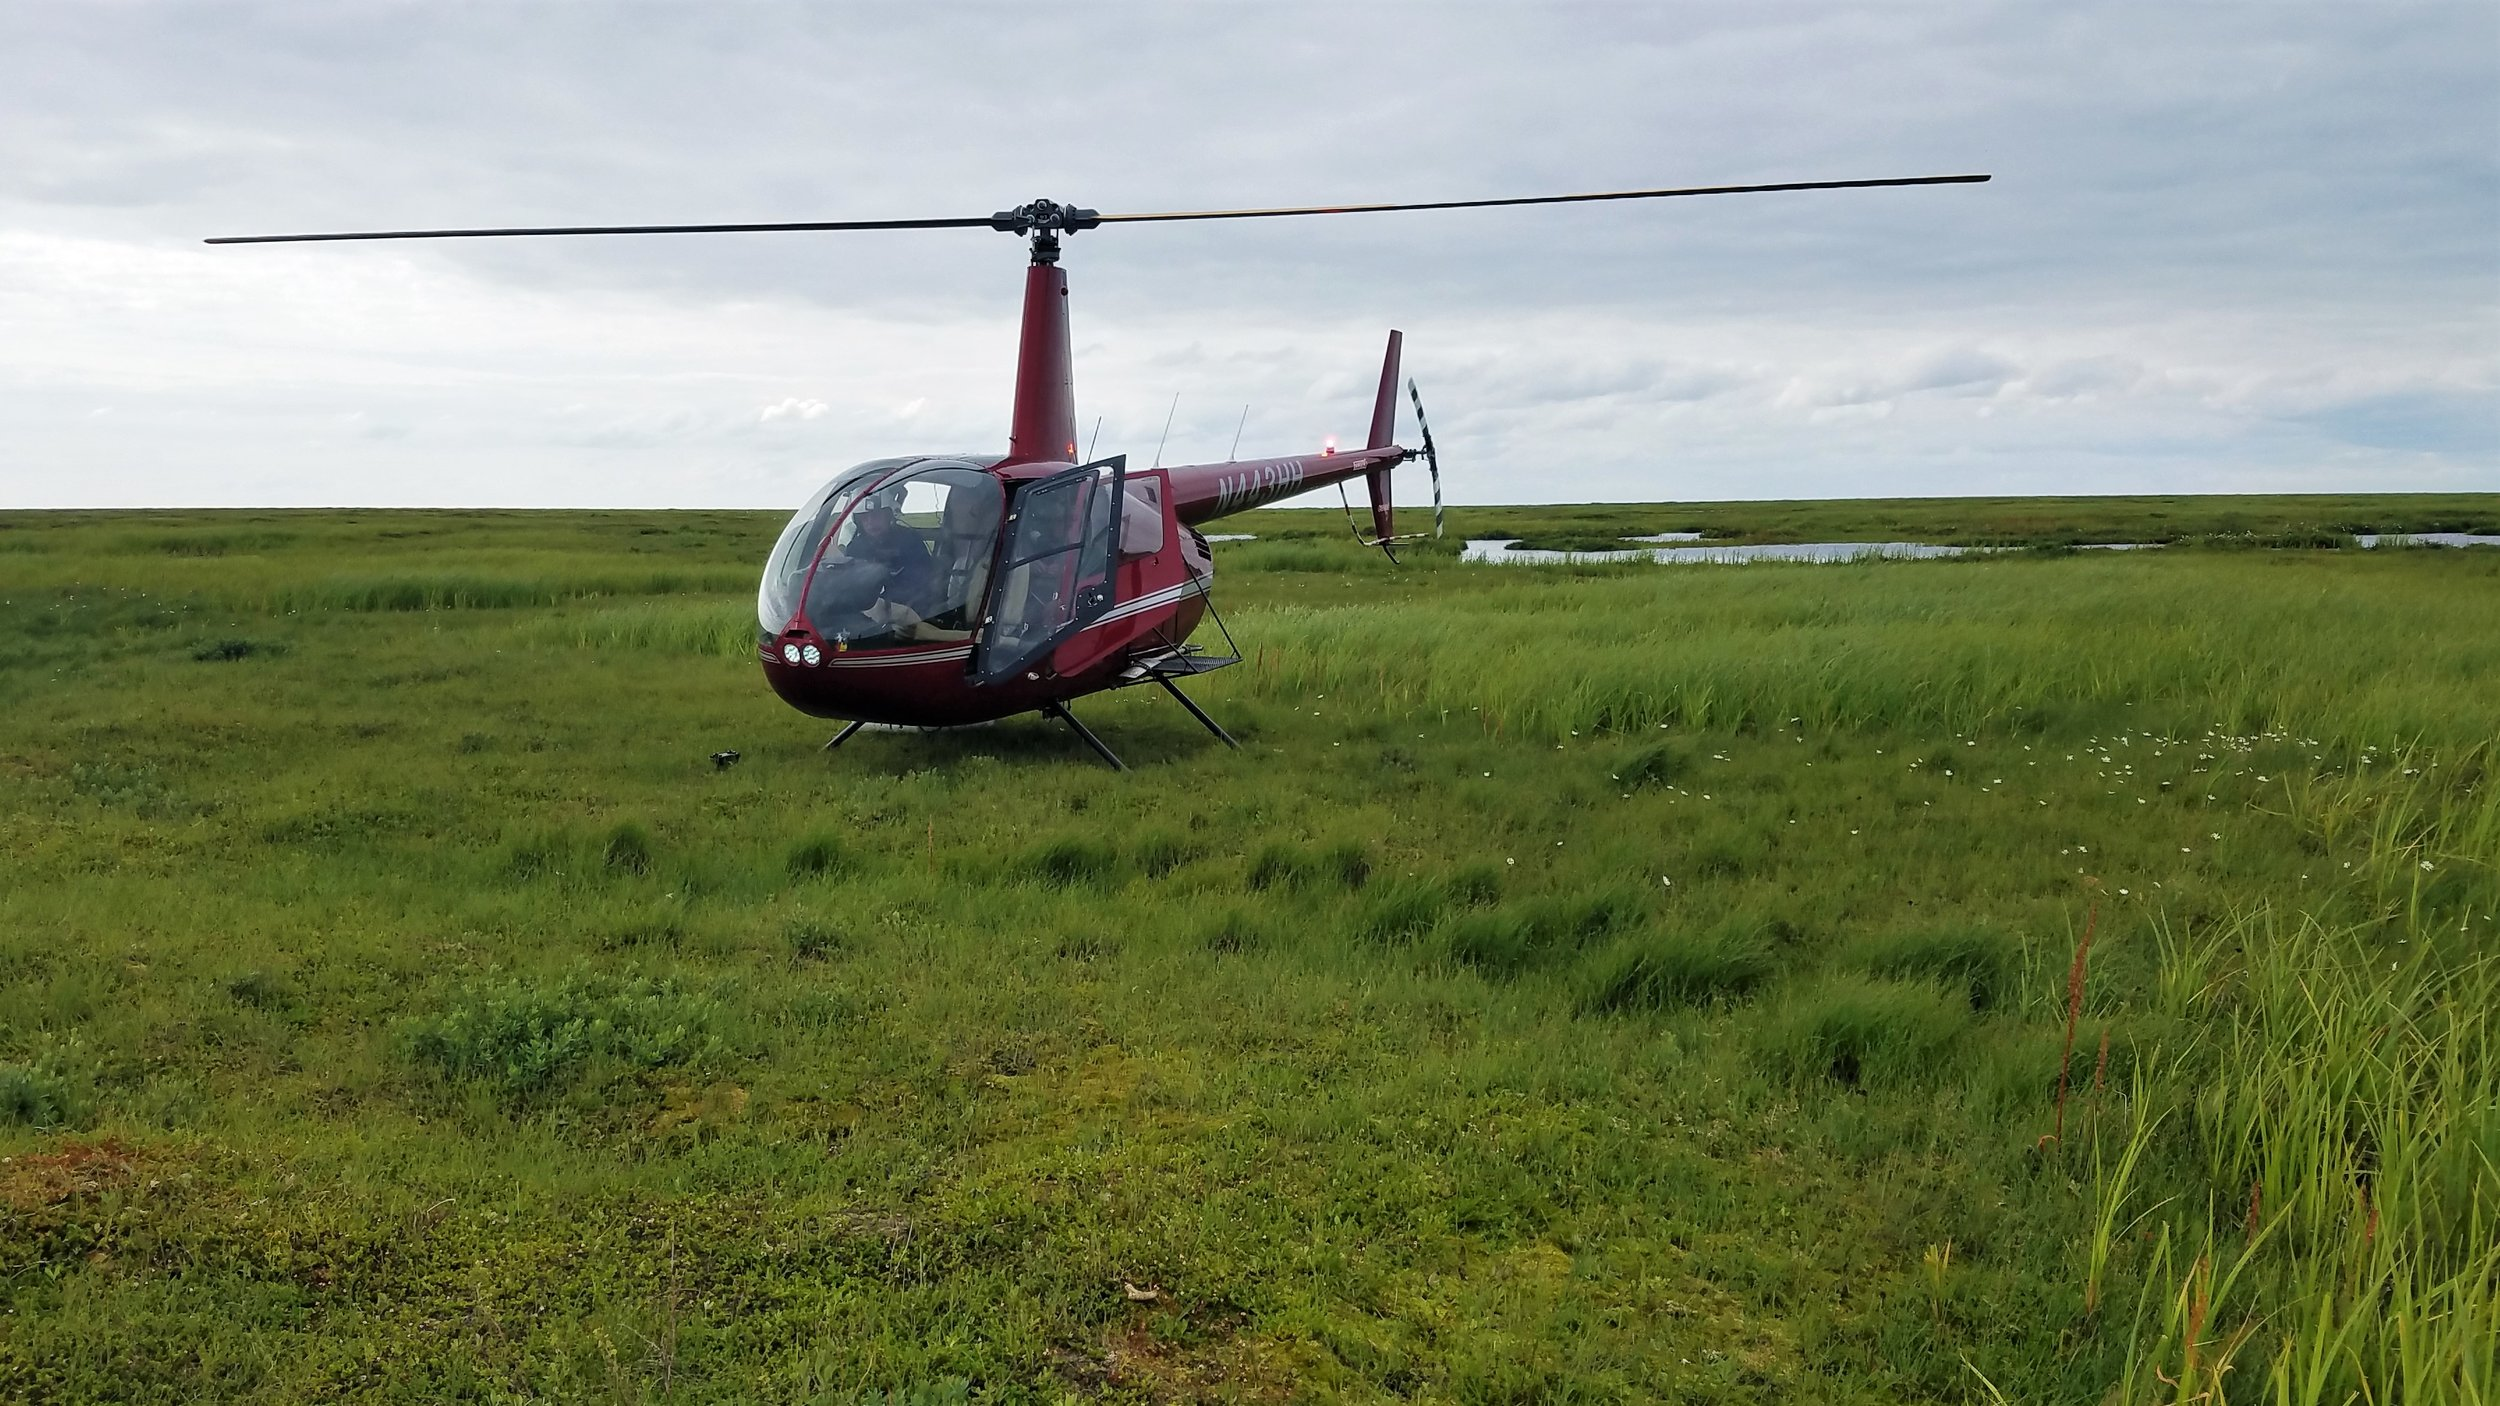 R44 Helicopter on the intertidal area near the Kuskokwim River Delta.